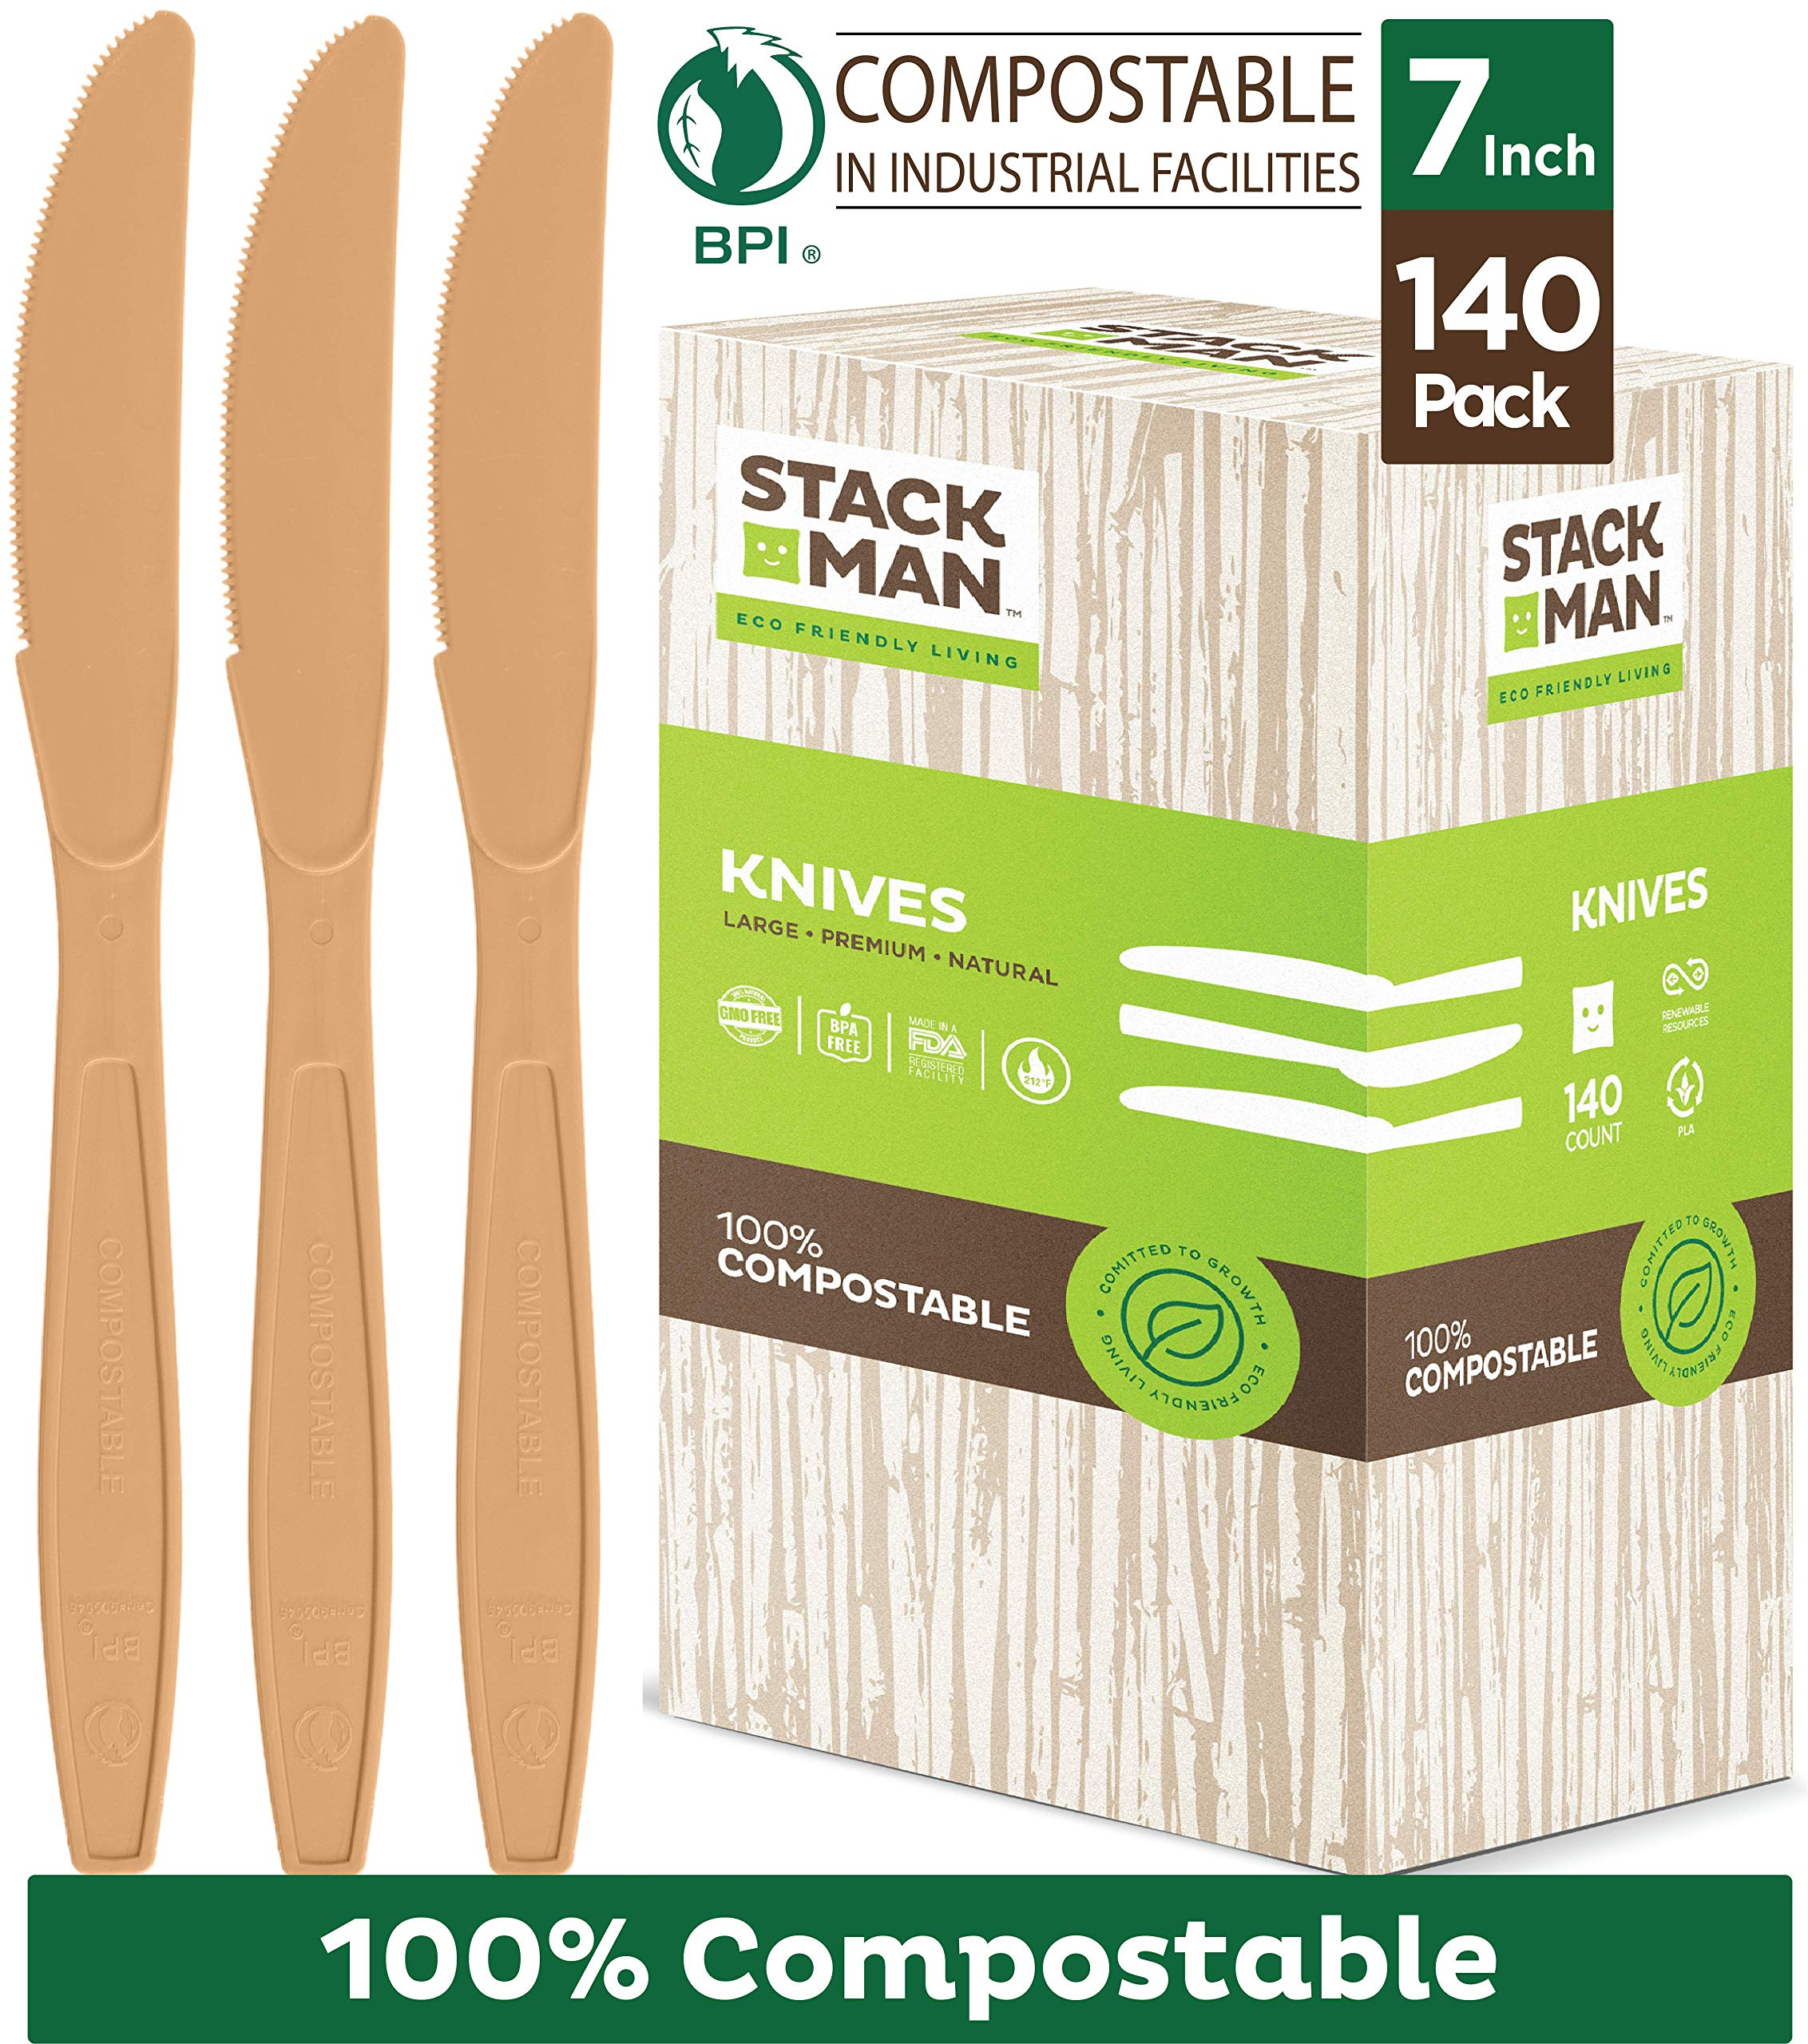 Disposable Knives 140 Pack 100% Compostable Plastic Silverware, Large 7.5'' Premium Heavy Duty Flatware Utensils, Eco Friendly Certified 100% Biodegradable Natural Wood Color Tableware by Stack Man